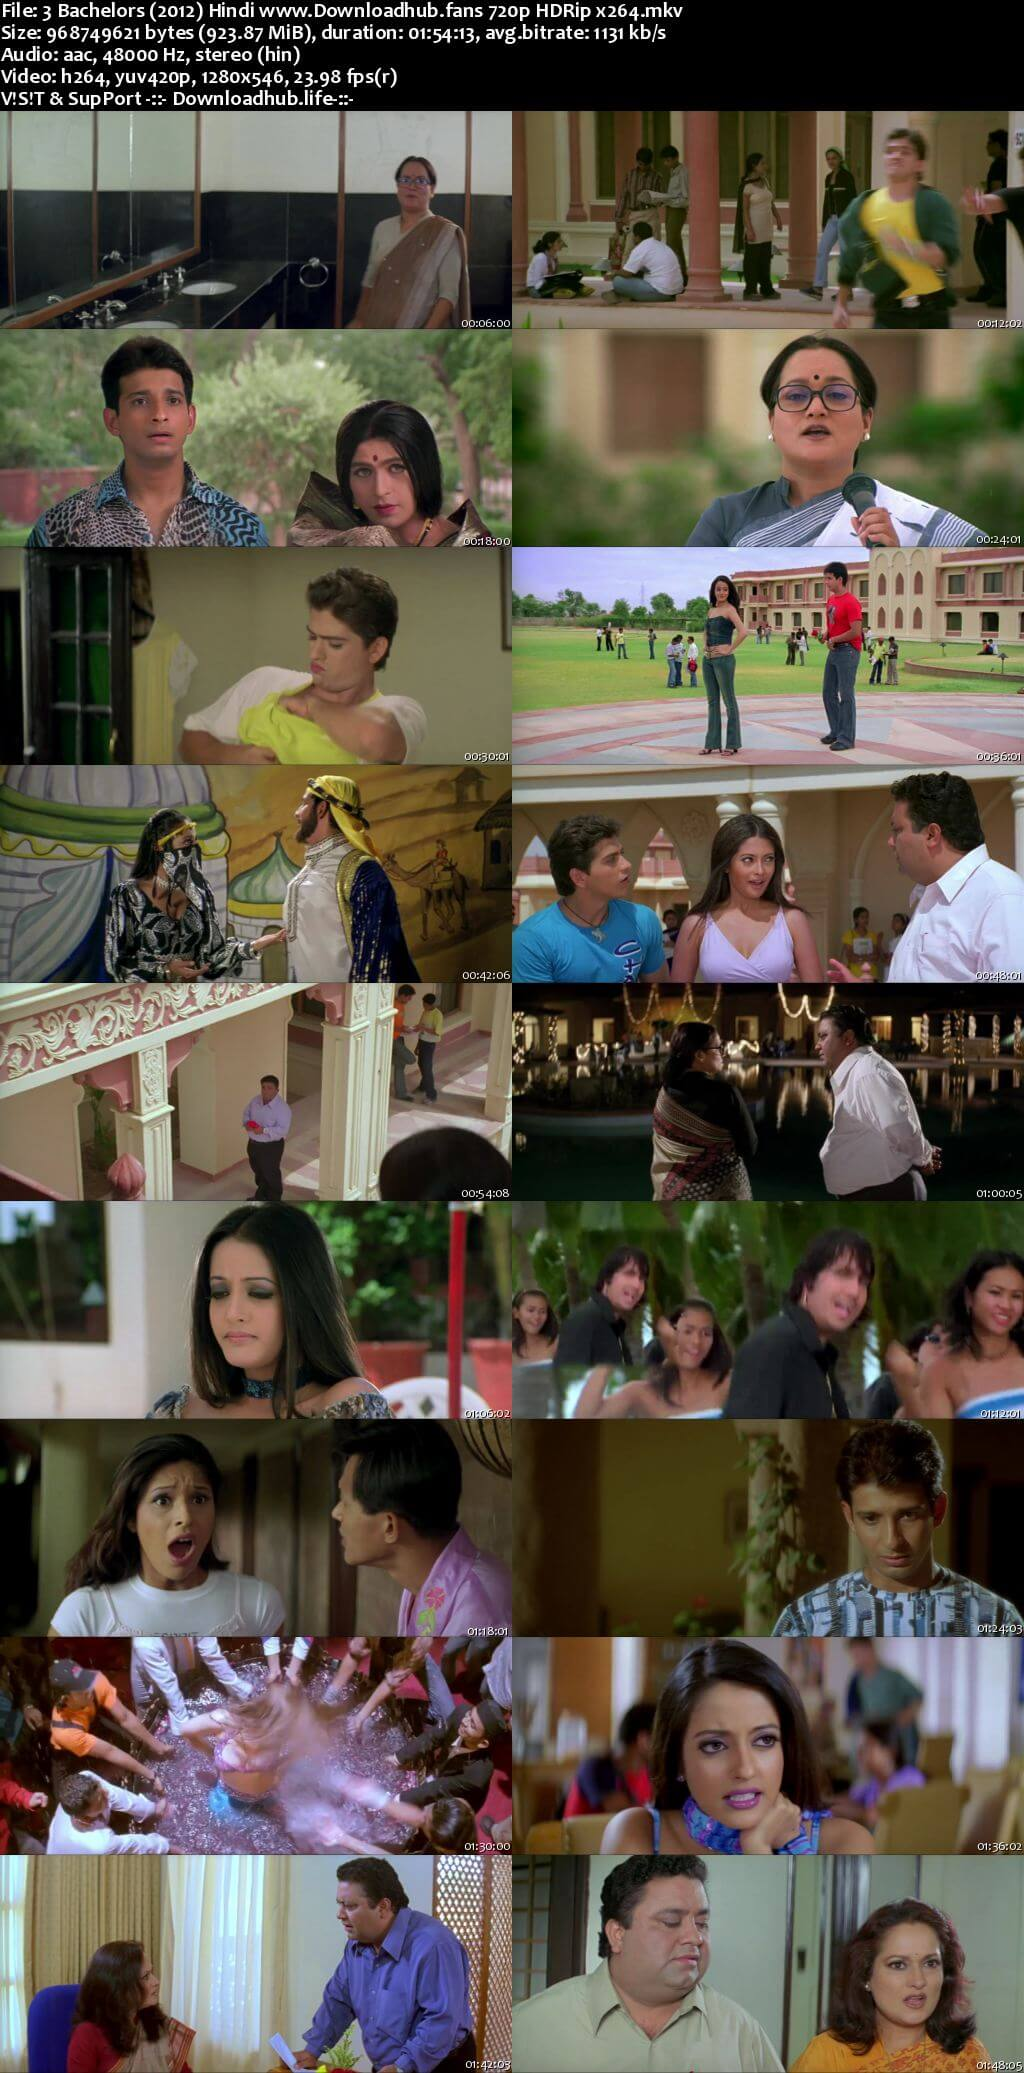 3 Bachelors 2012 Hindi 720p HDRip x264